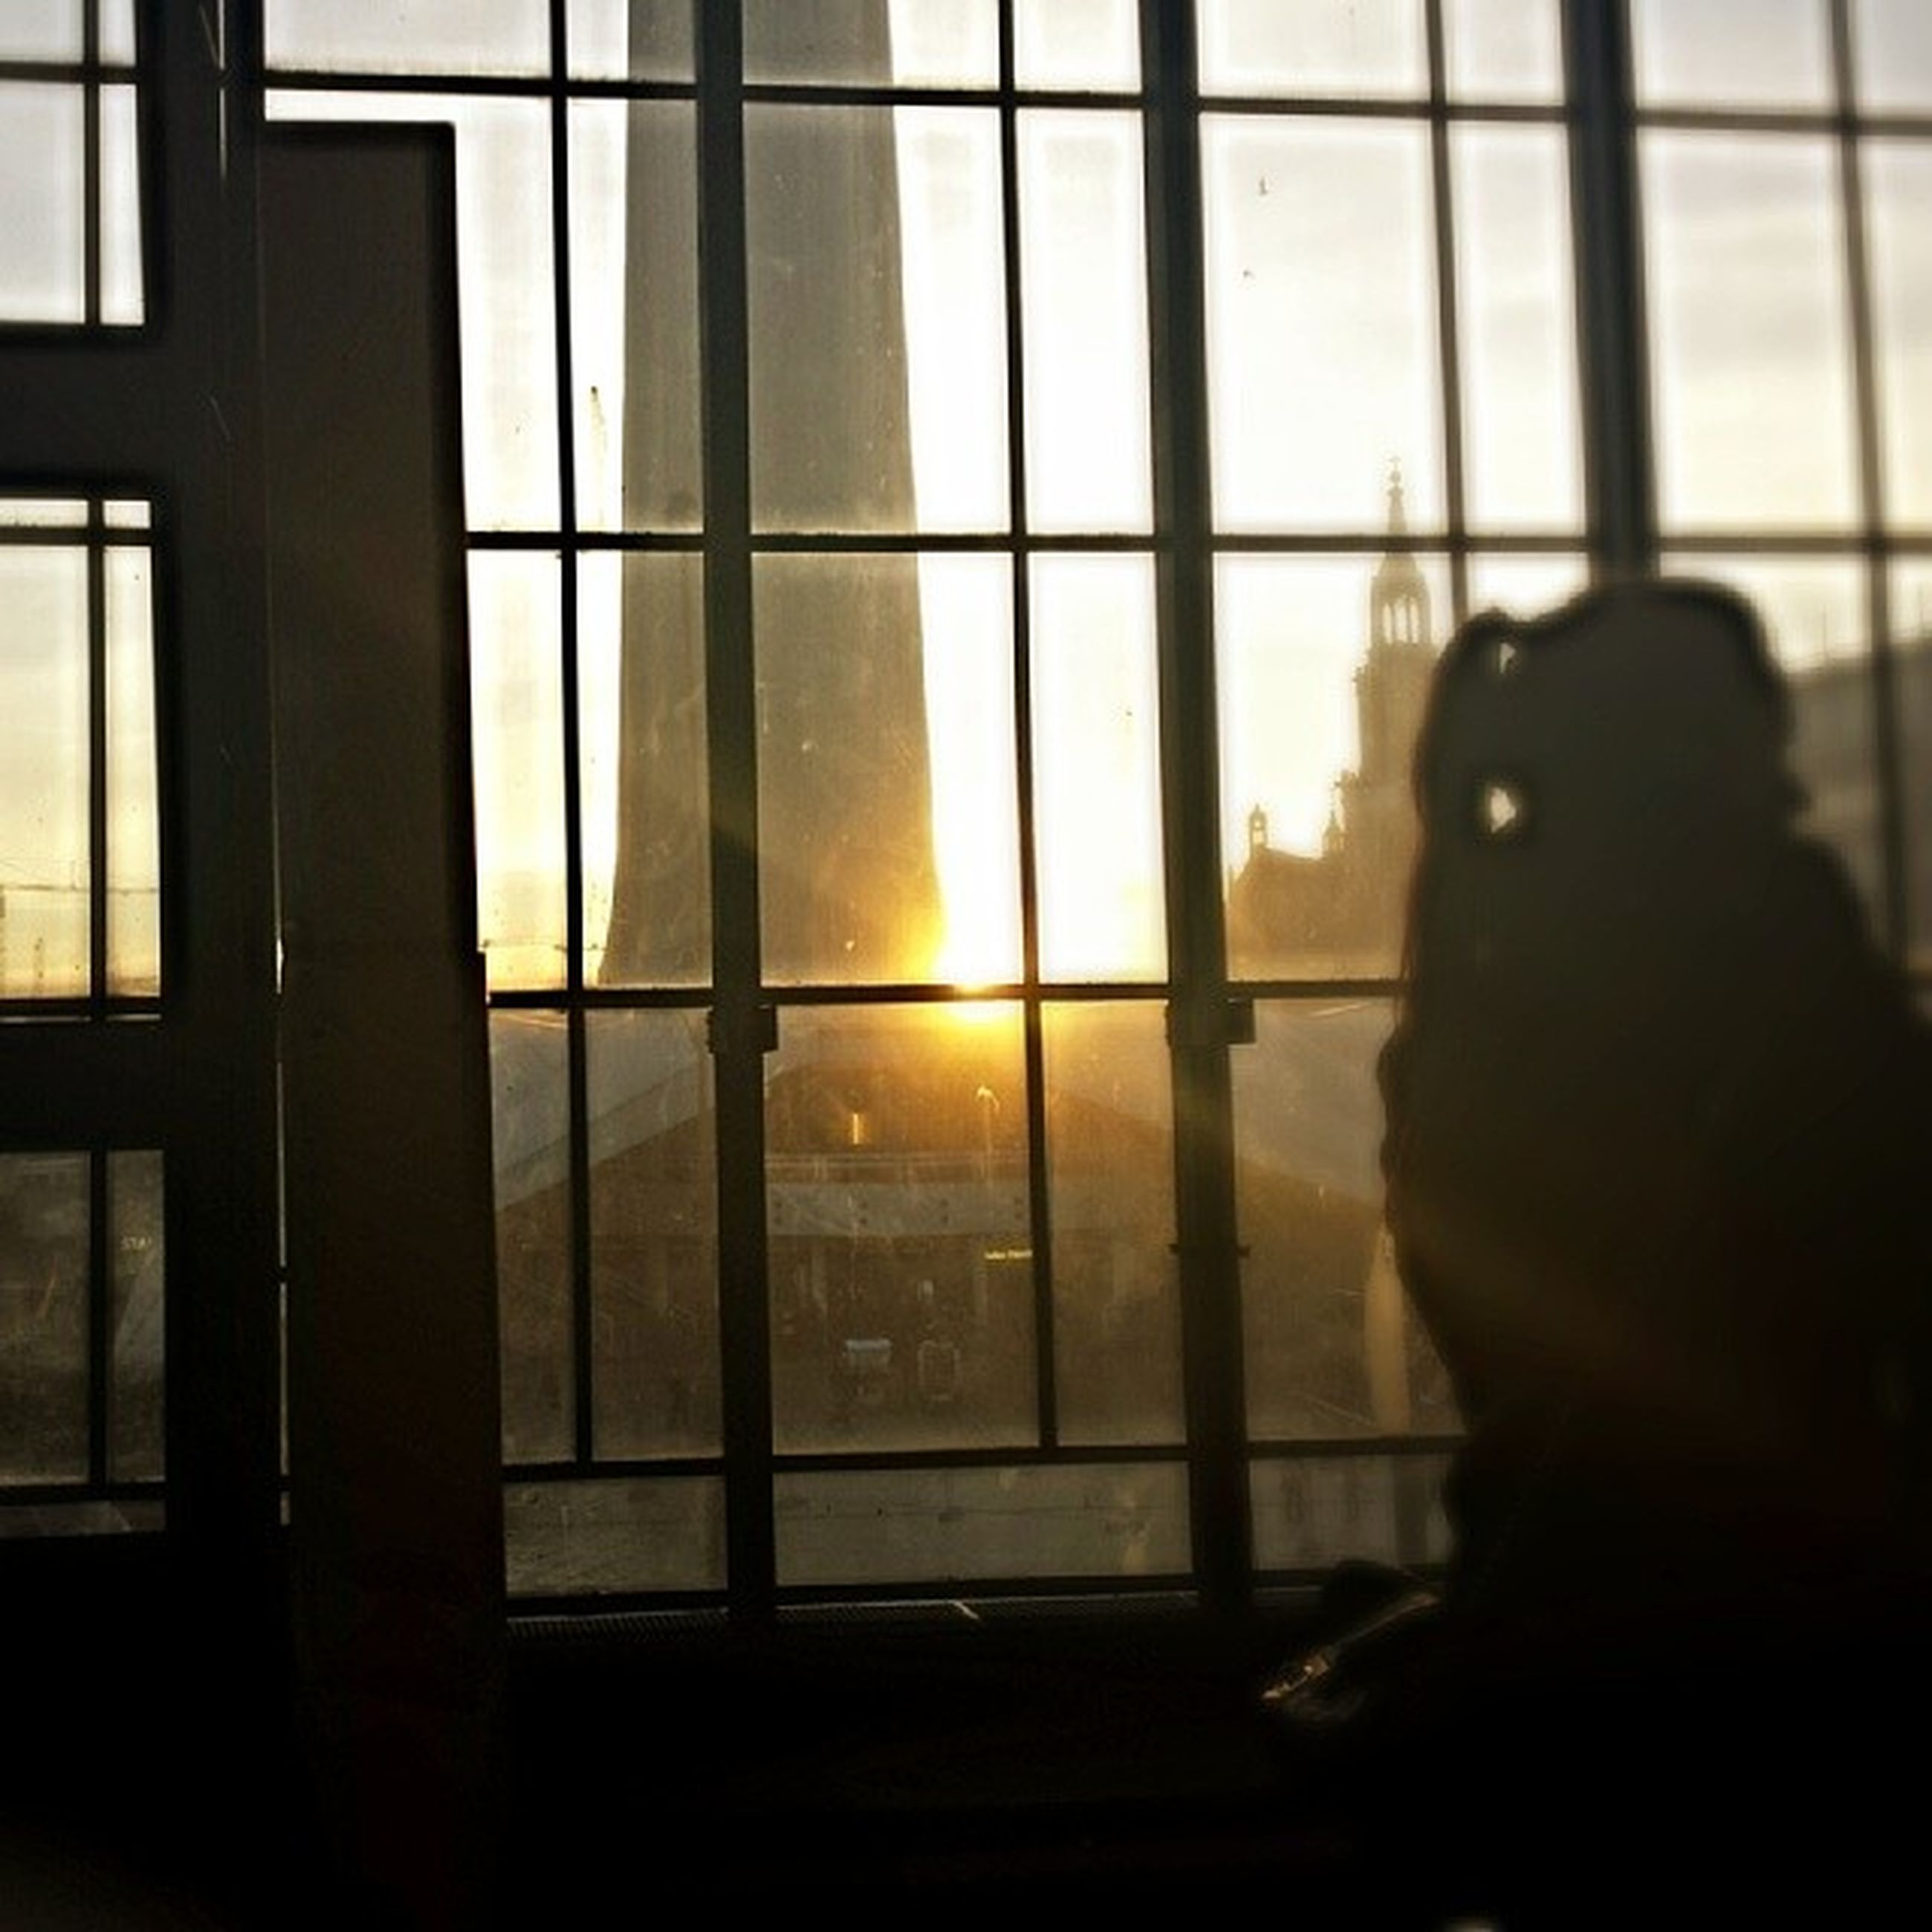 window, indoors, glass - material, silhouette, transparent, built structure, architecture, sunset, sunlight, glass, curtain, looking through window, reflection, building exterior, modern, building, sky, home interior